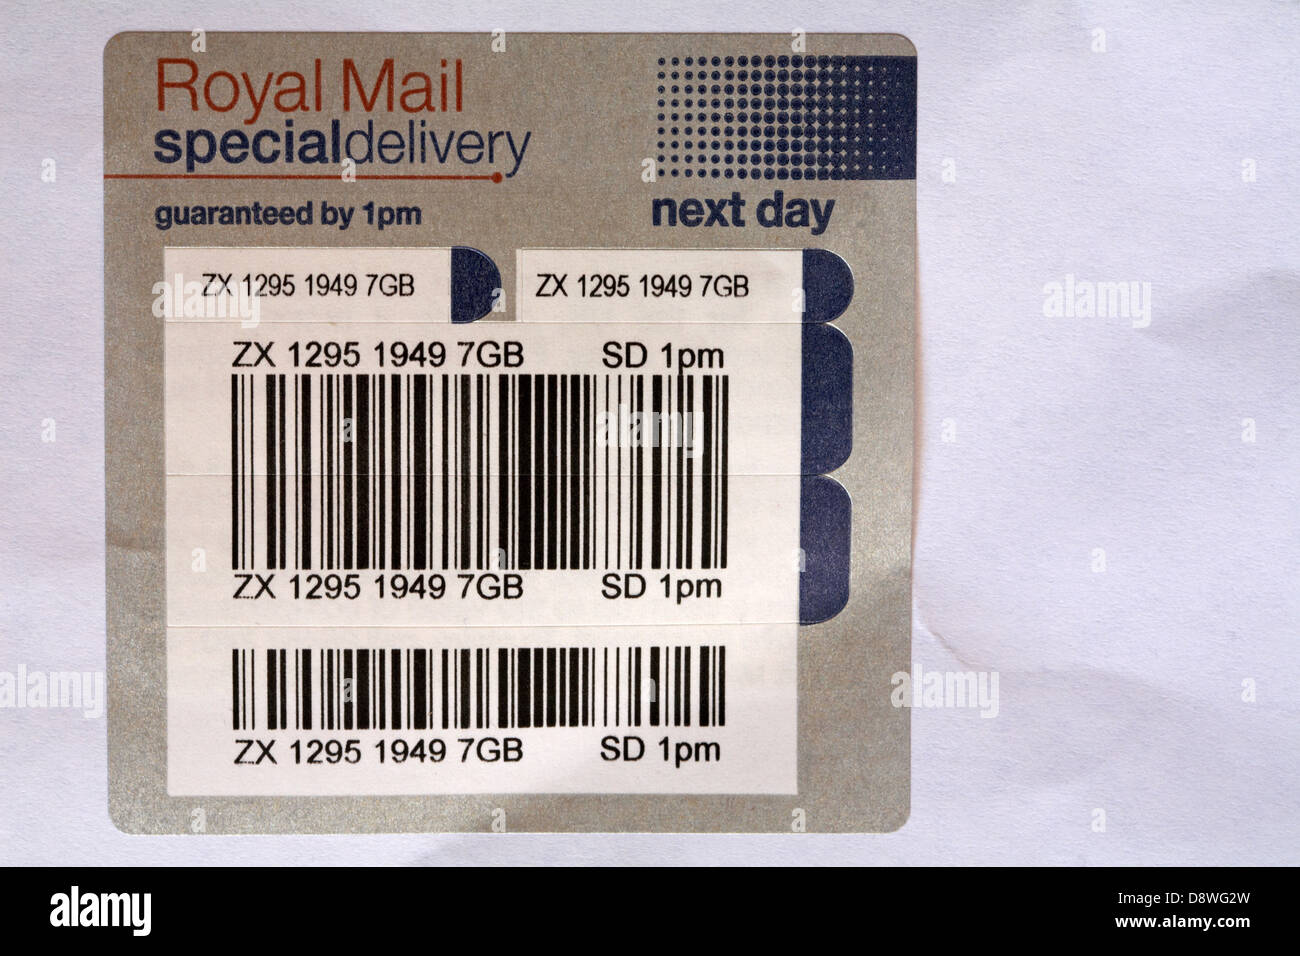 Special Delivery Next Day 1pm Labels Stickers For Royal Mail 500